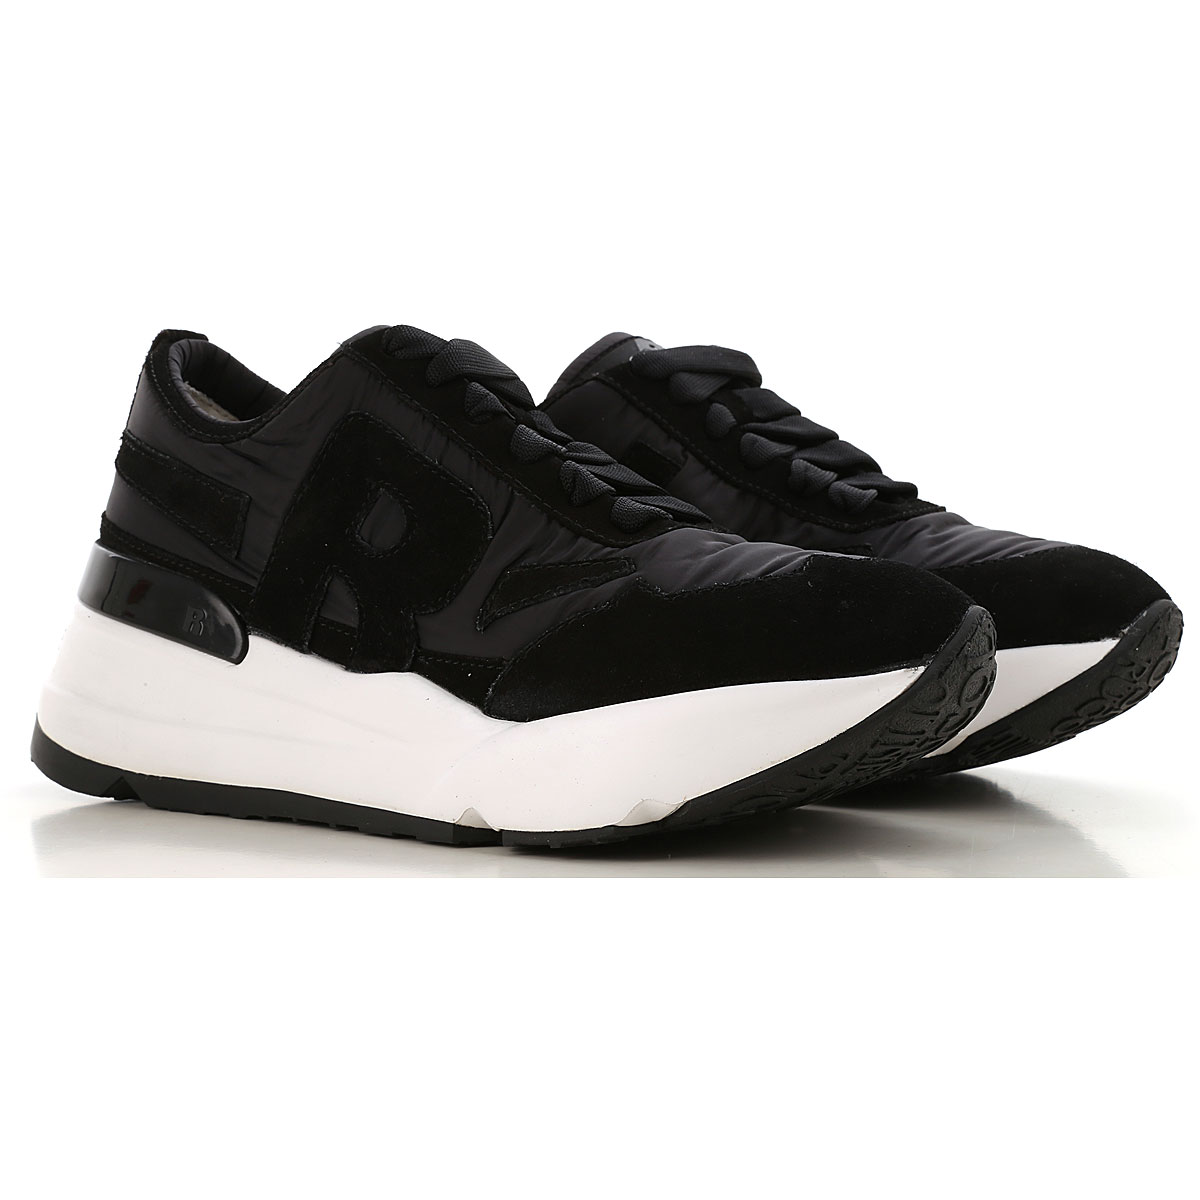 Image of Ruco Line Sneakers for Women, Black, Nylon, 2017, 5 6 7 8 9